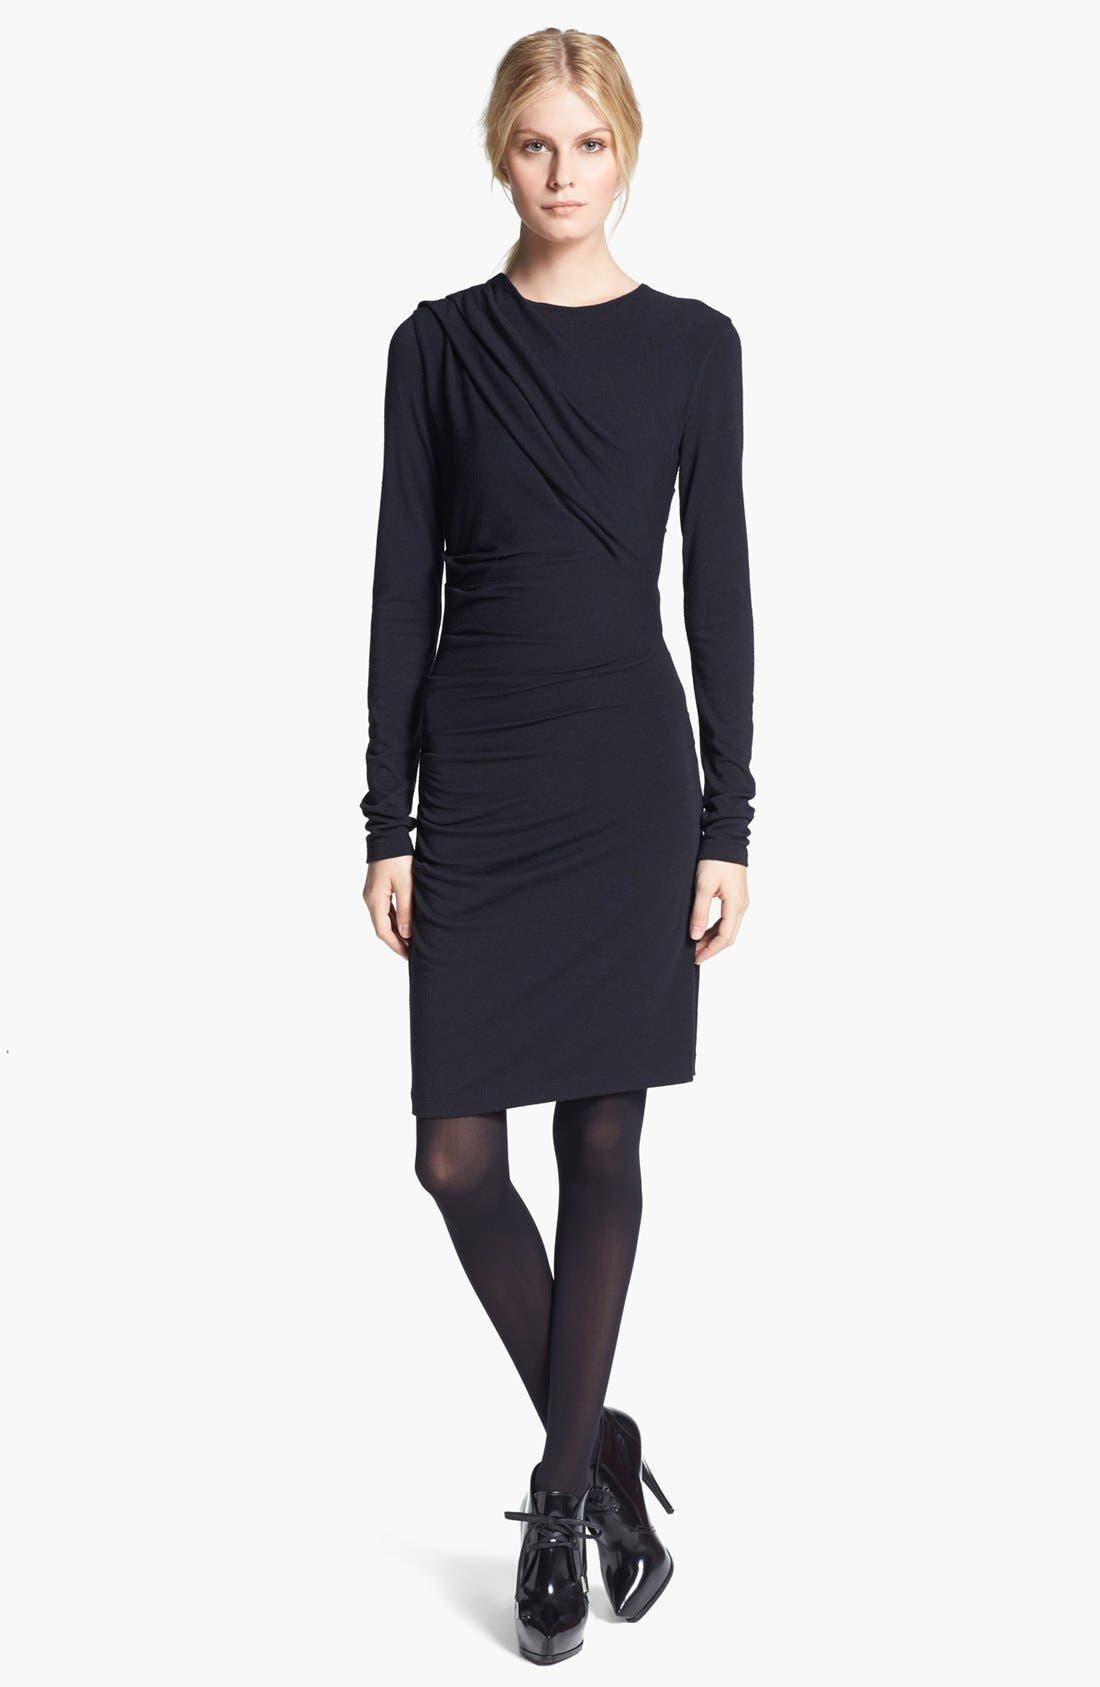 T by Alexander Wang Gathered Jersey Dress,                         Main,                         color, 001